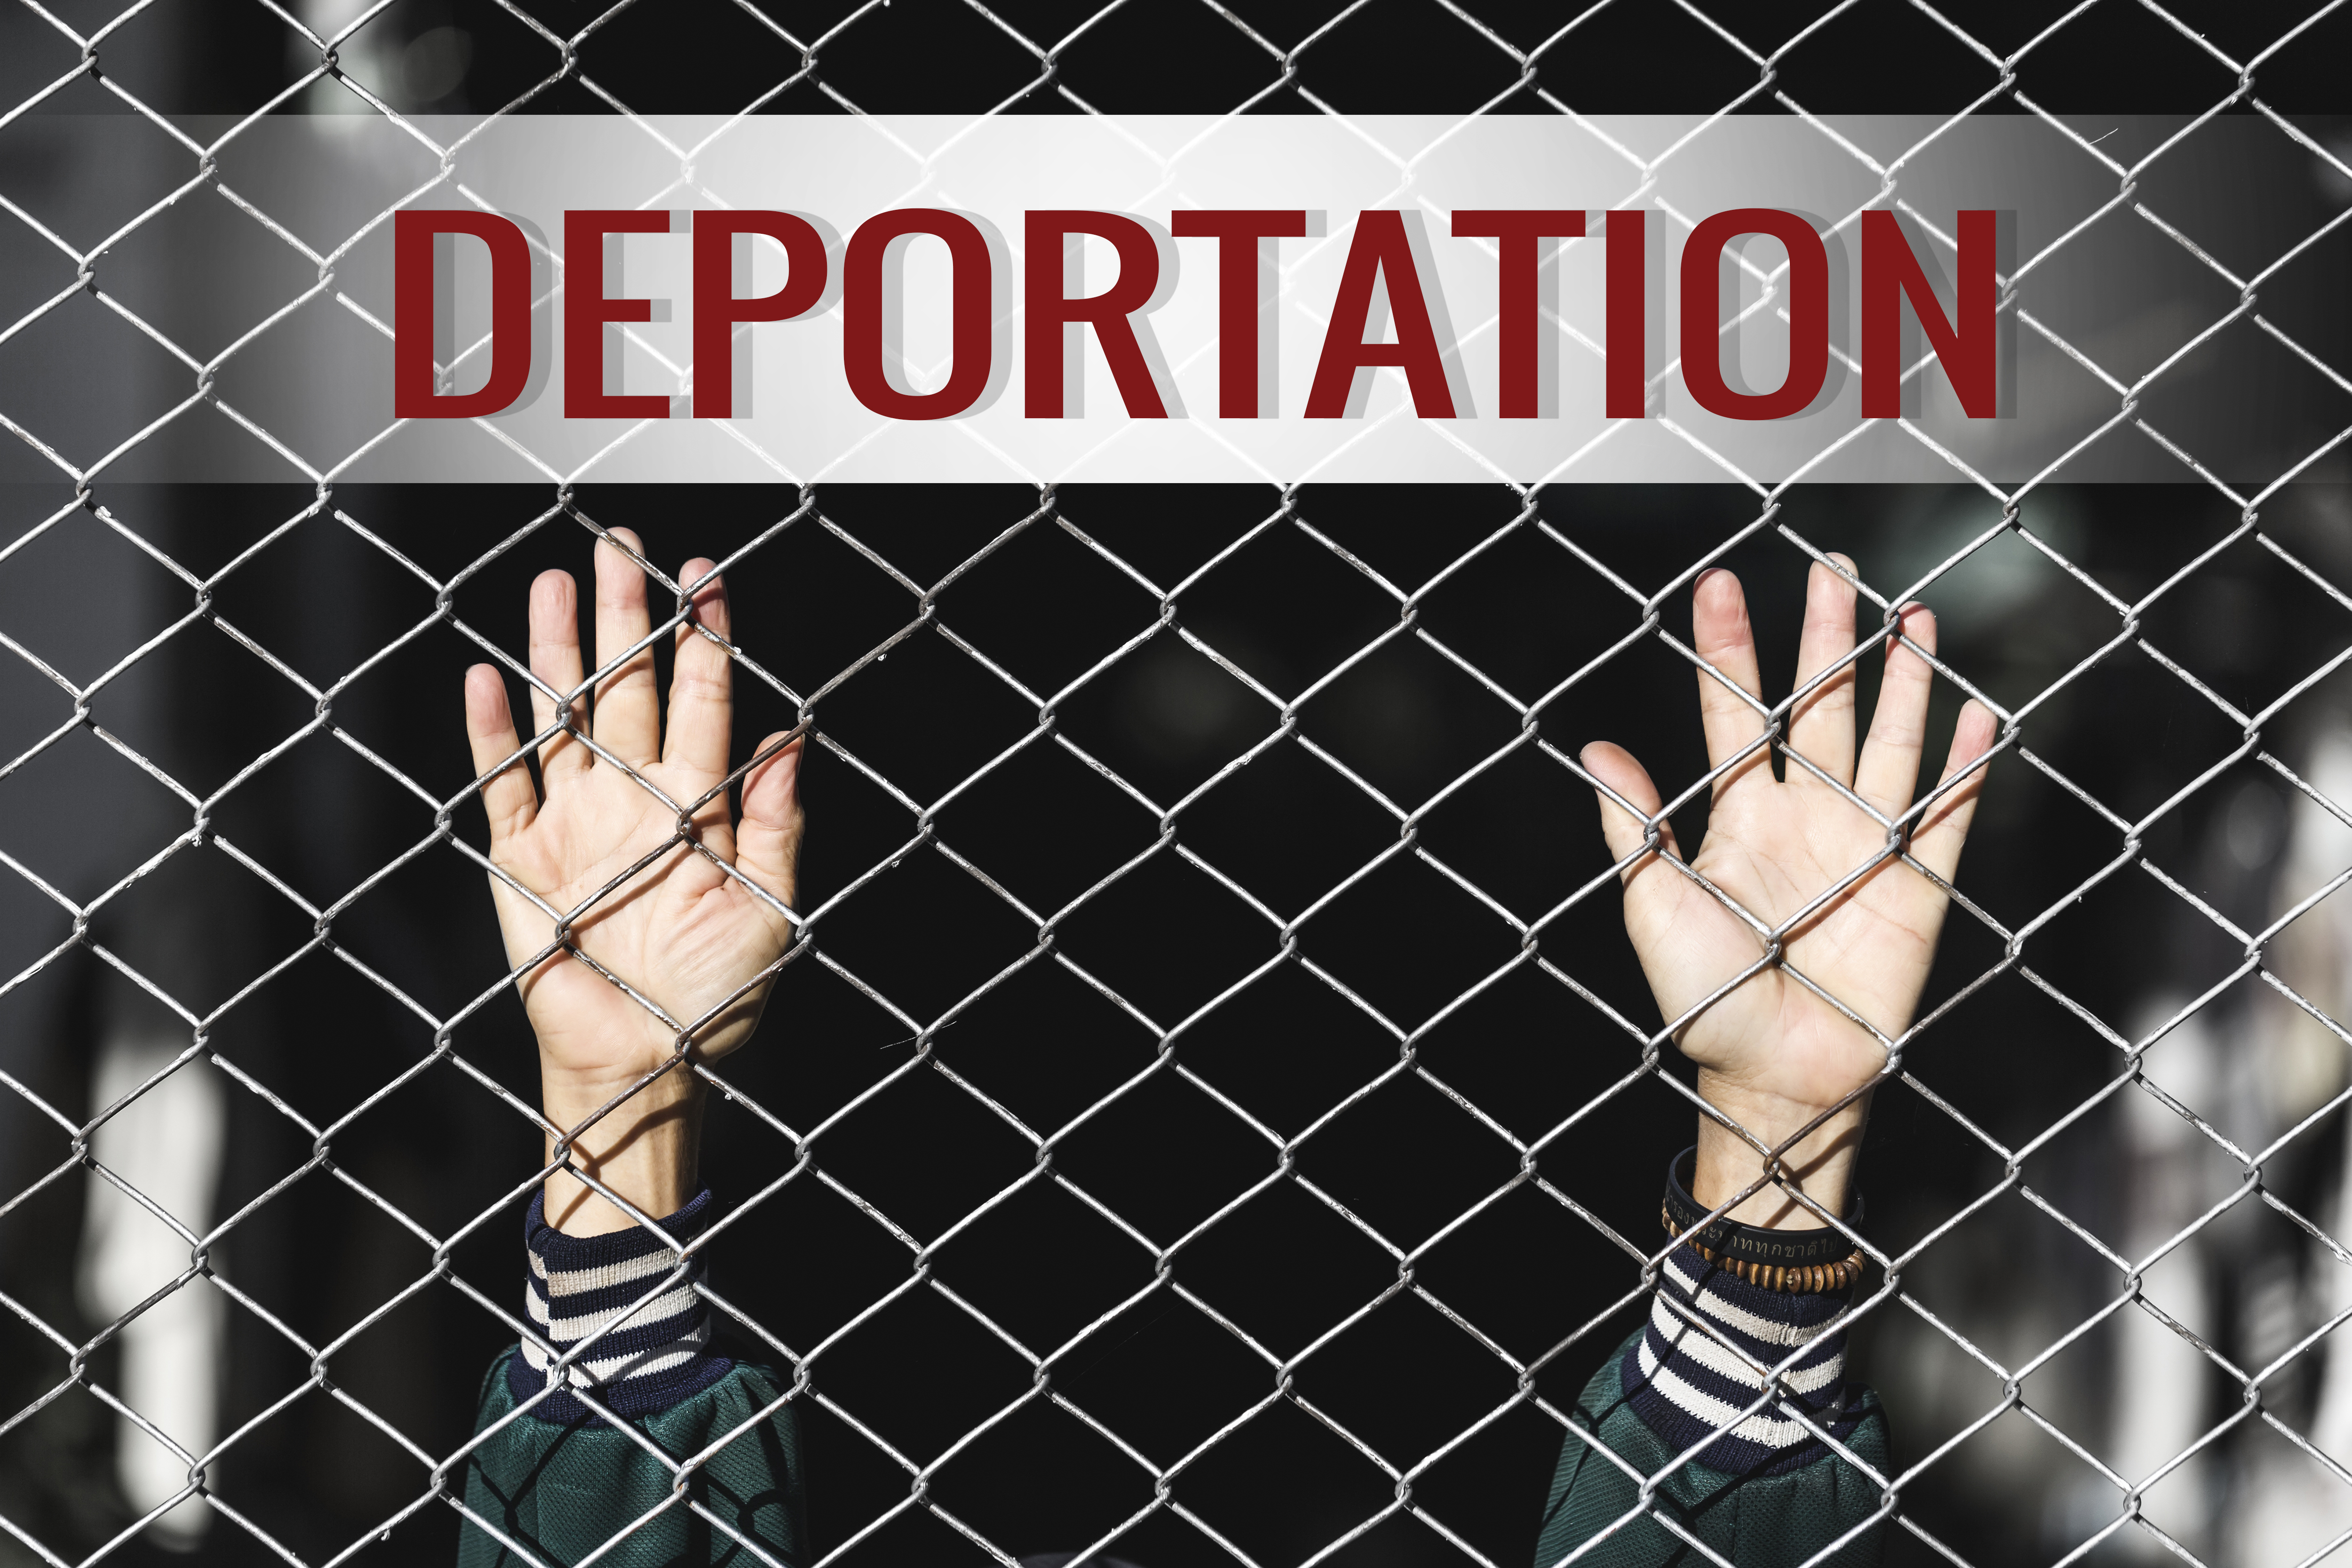 Deportation photo. Shutterstock